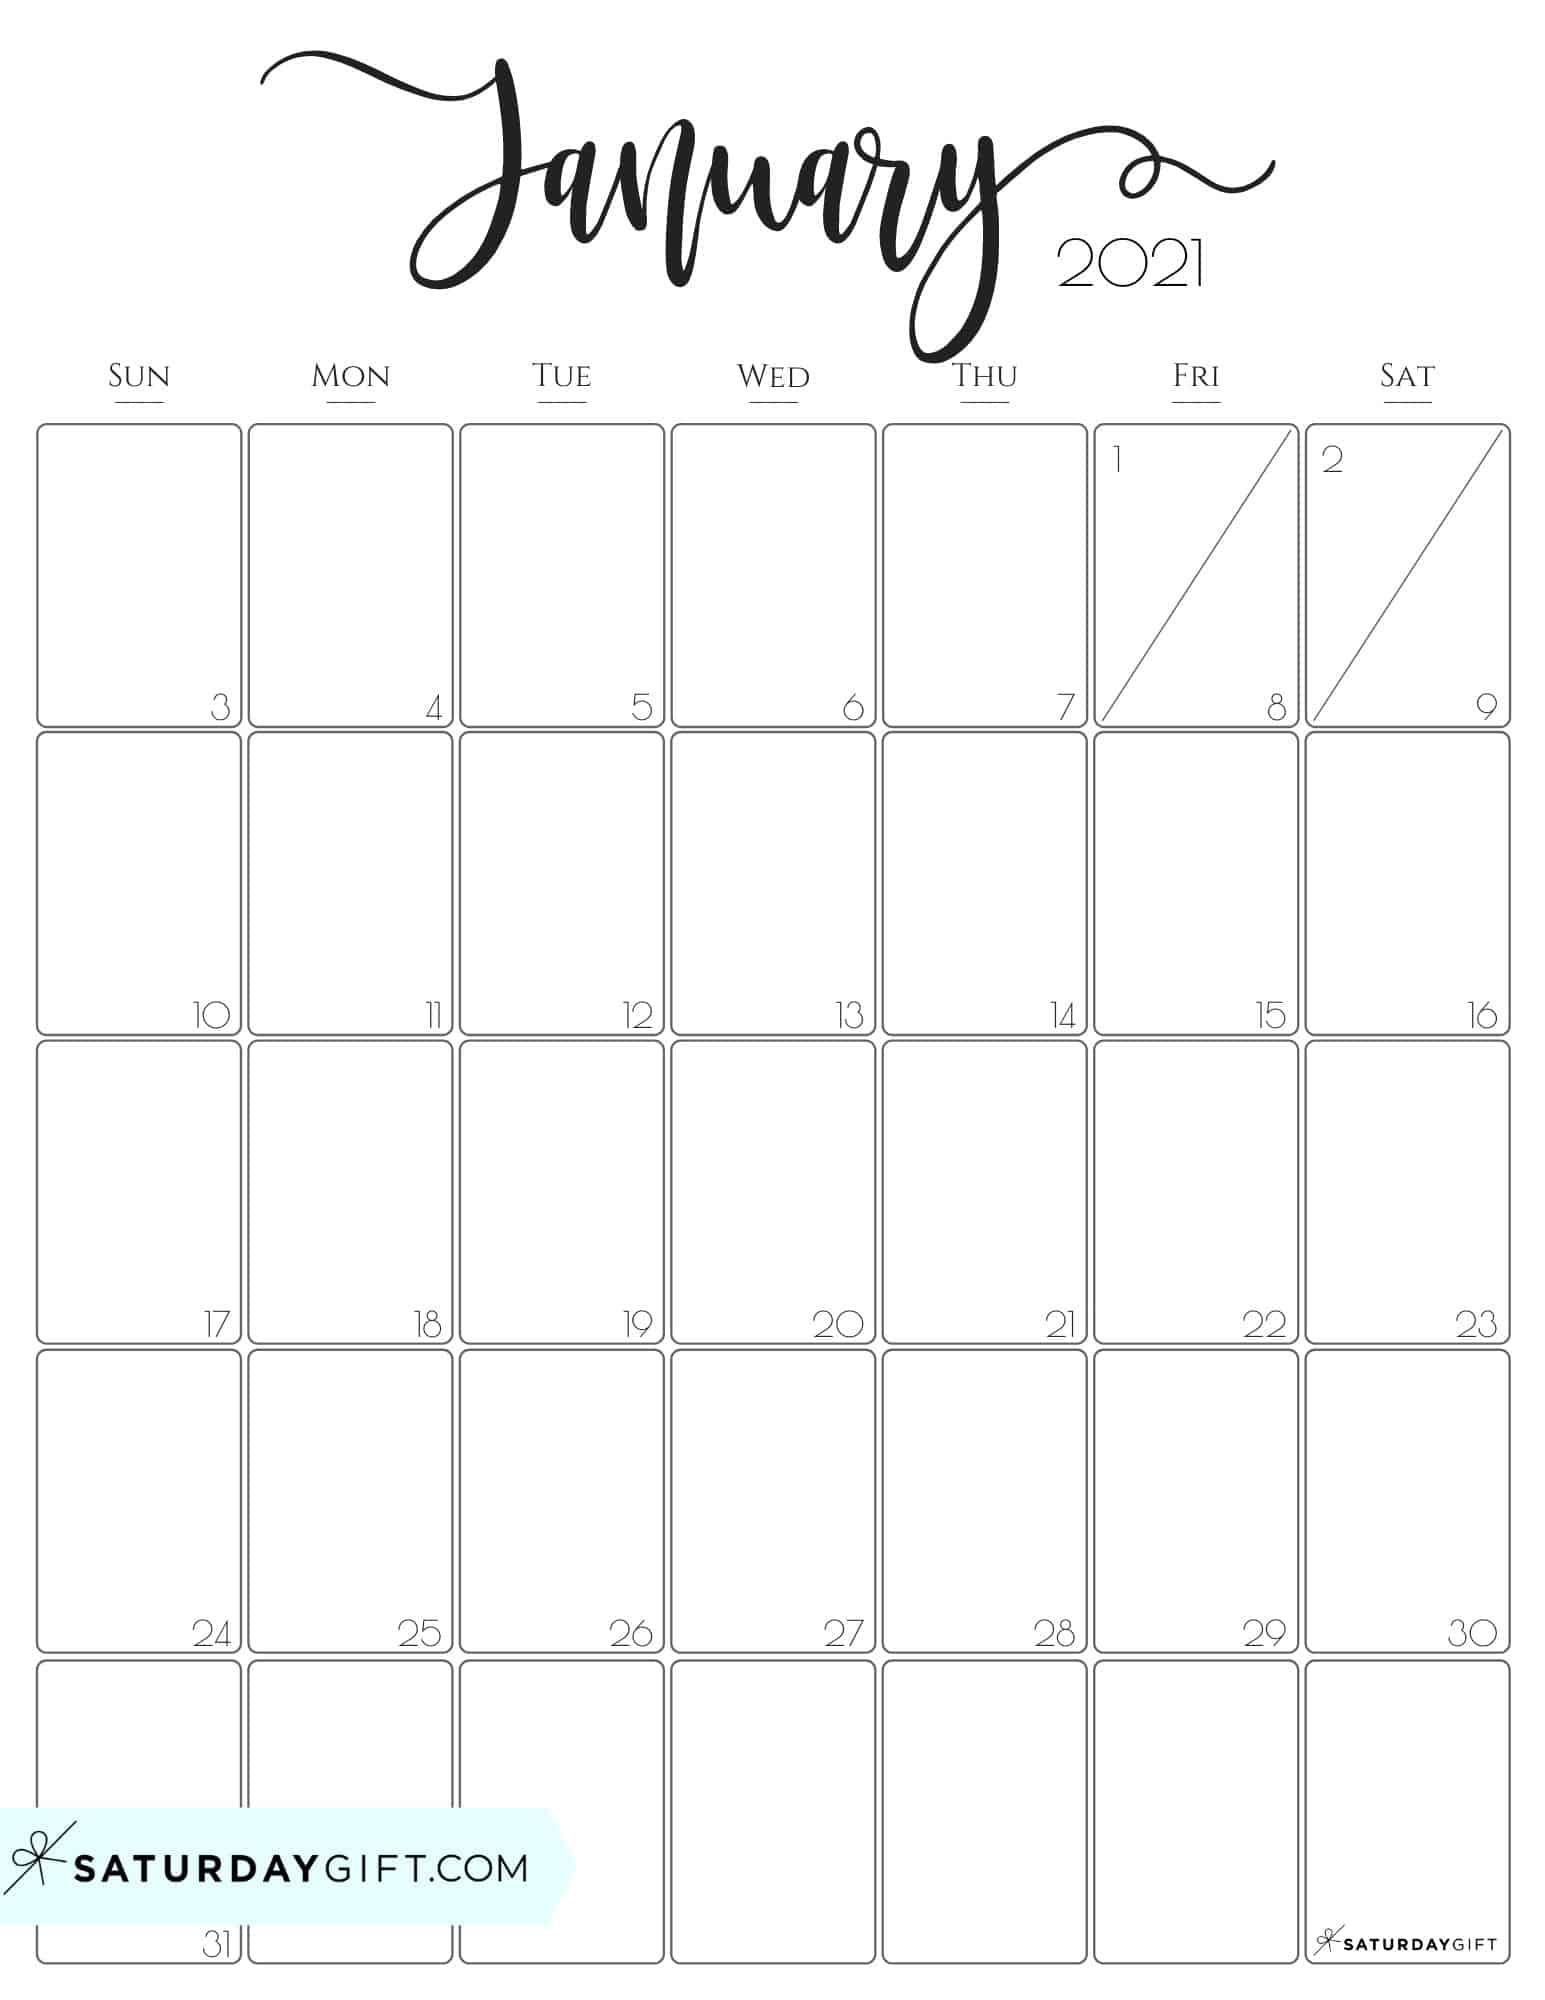 Calendar For 2021 January Cute (& Free!) Printable January 2021 Calendar | SaturdayGift